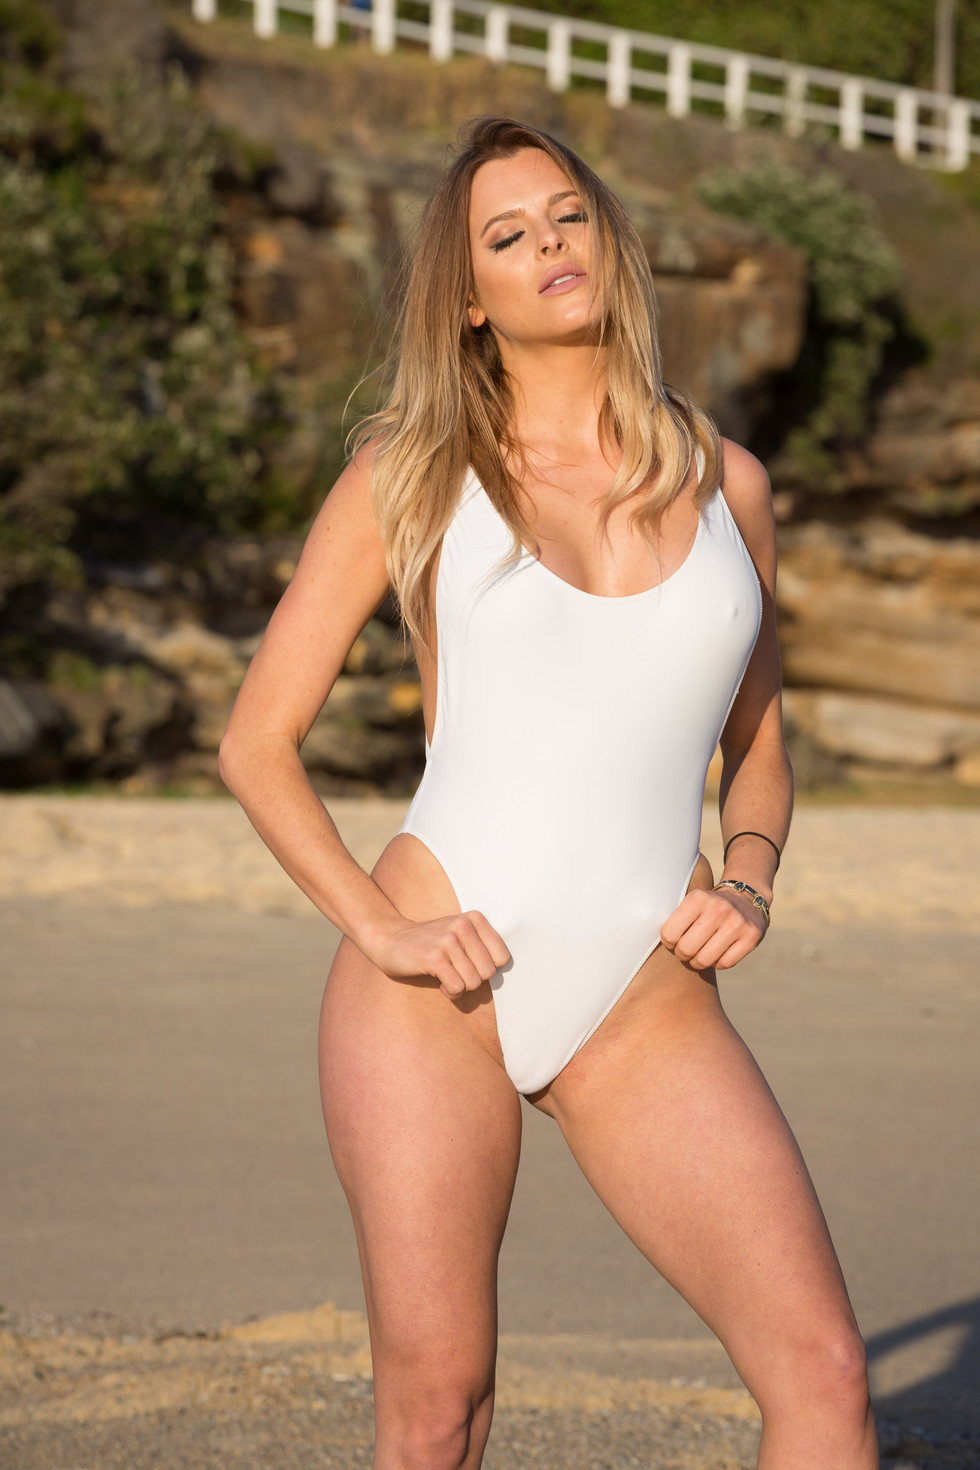 Kristy__by_CoogeePhotography-177954.jpg